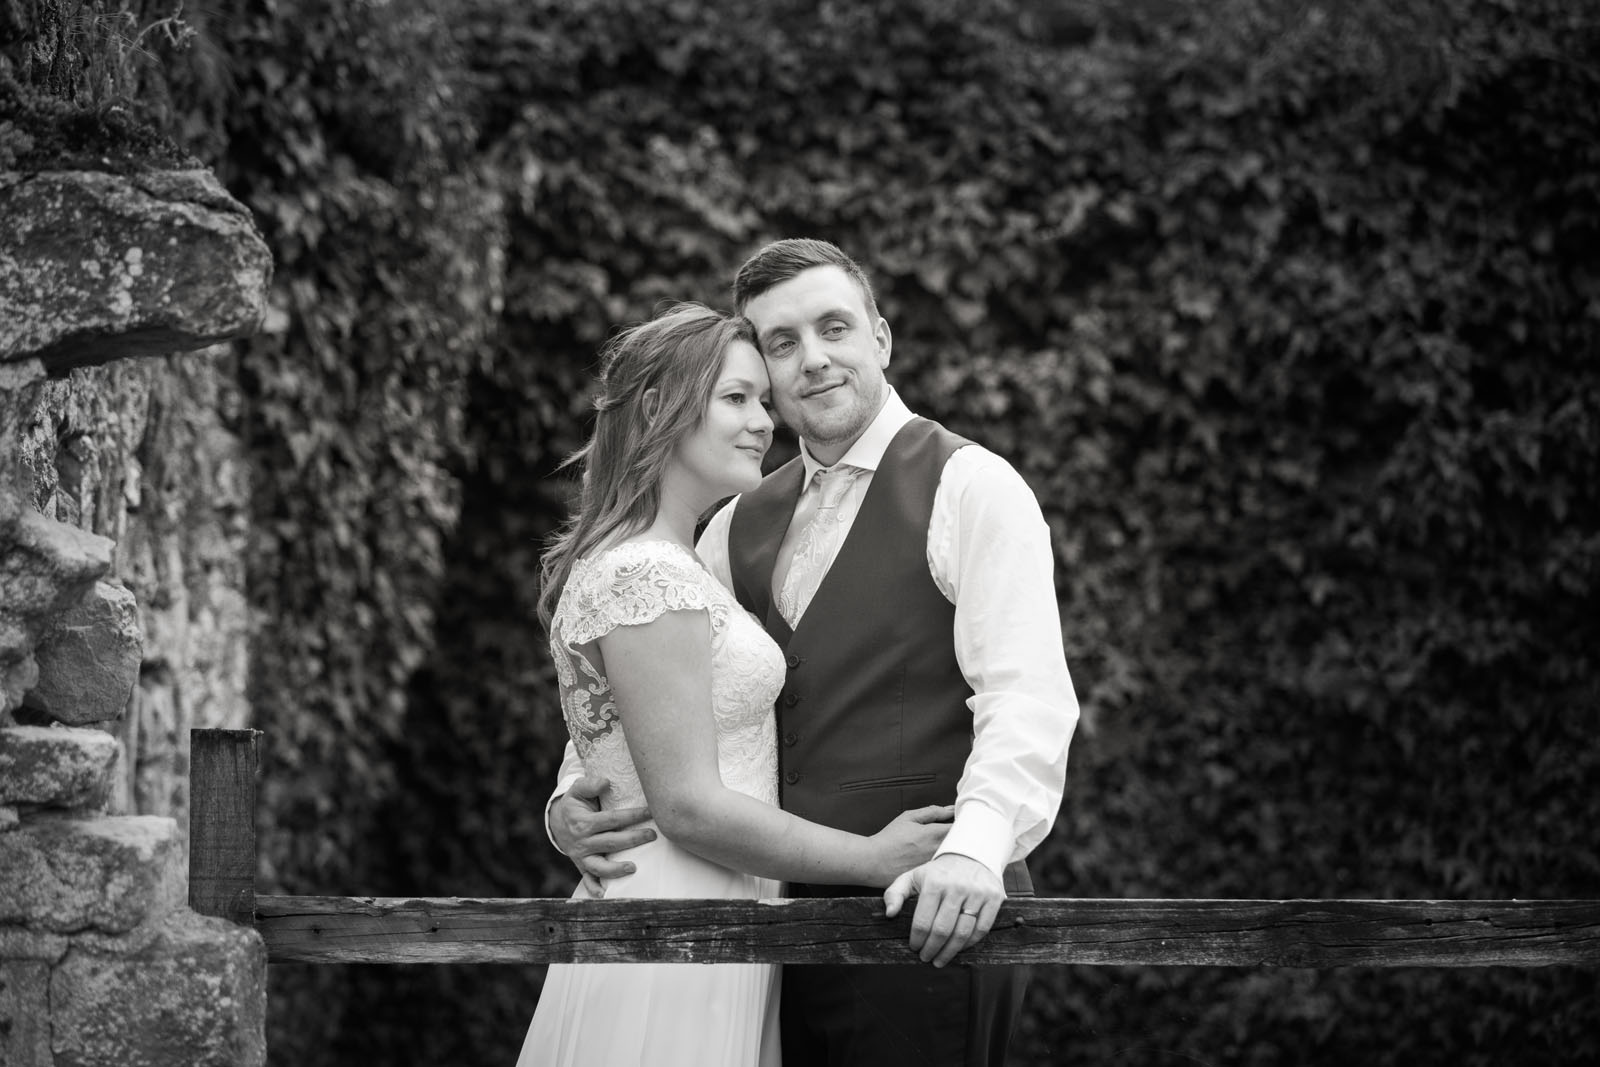 Notley Abbey Wedding Photography - bride and groom